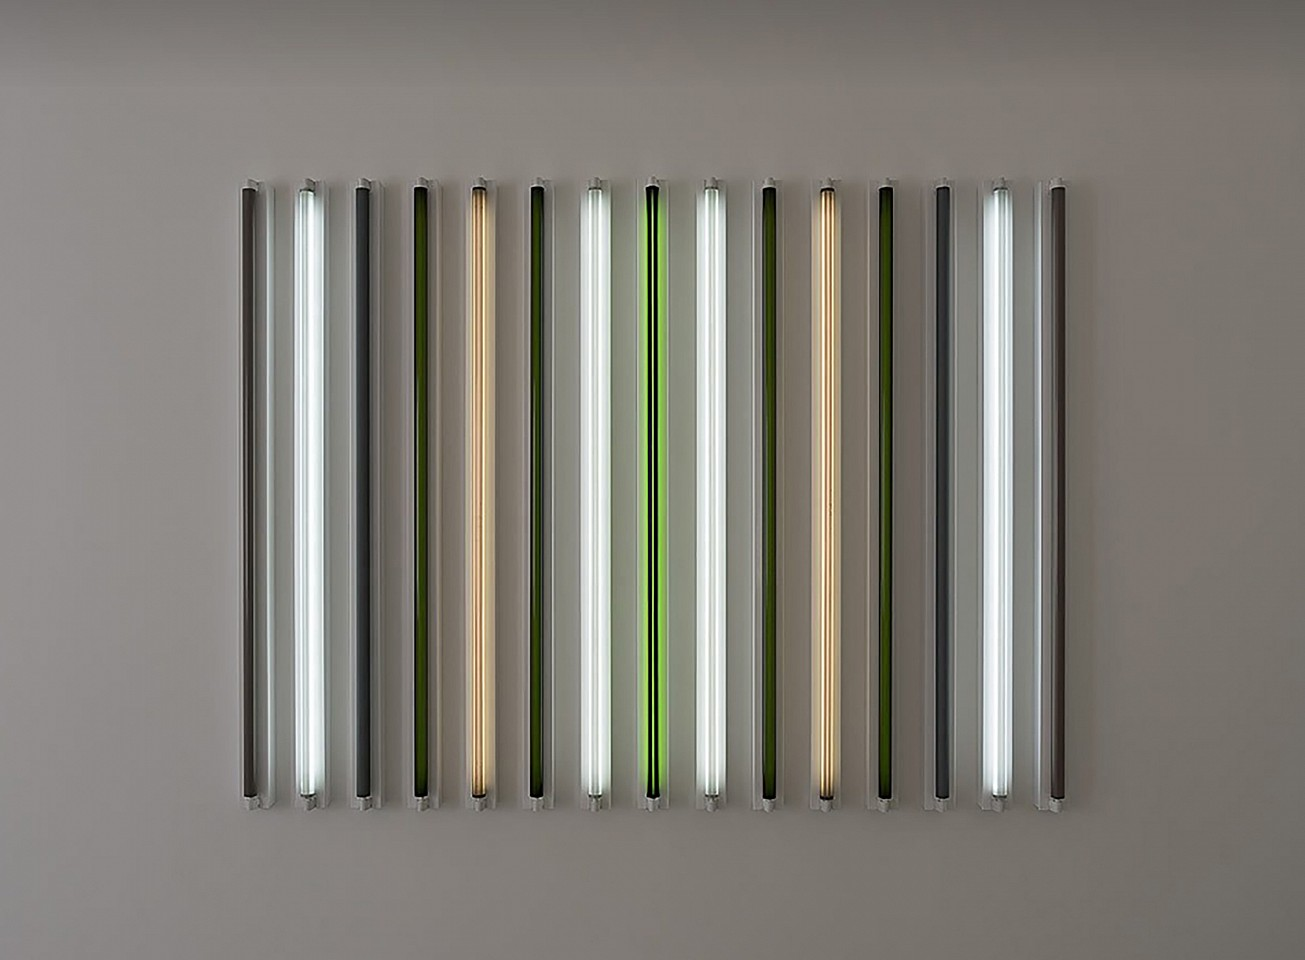 "<p><span class=""viewer-caption-artist"">Robert Irwin</span></p> <p><span class=""viewer-caption-title""><i>Aces & Eights</i></span>, <span class=""viewer-caption-year"">2012-2013</span></p> <p><span class=""viewer-caption-media"">Light + Shadow + Reflection + Color</span></p> <p><span class=""viewer-caption-inventory"">RI0001</span></p> <p><span class=""viewer-caption-aux""></span></p>"